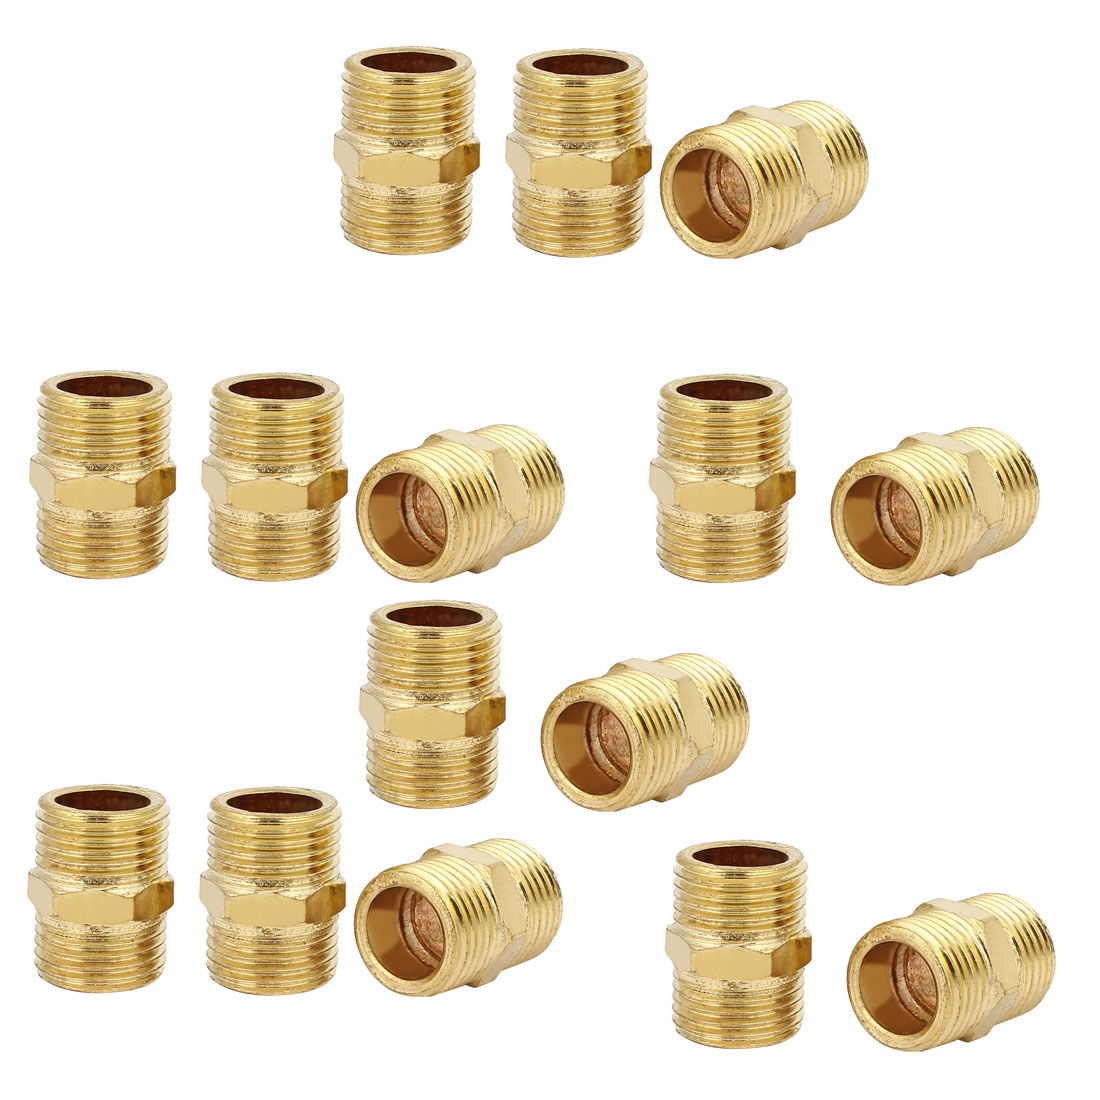 1/2BSP Male Thread Brass Hex Nipple Tube Pipe Connecting Fittings 15pcs